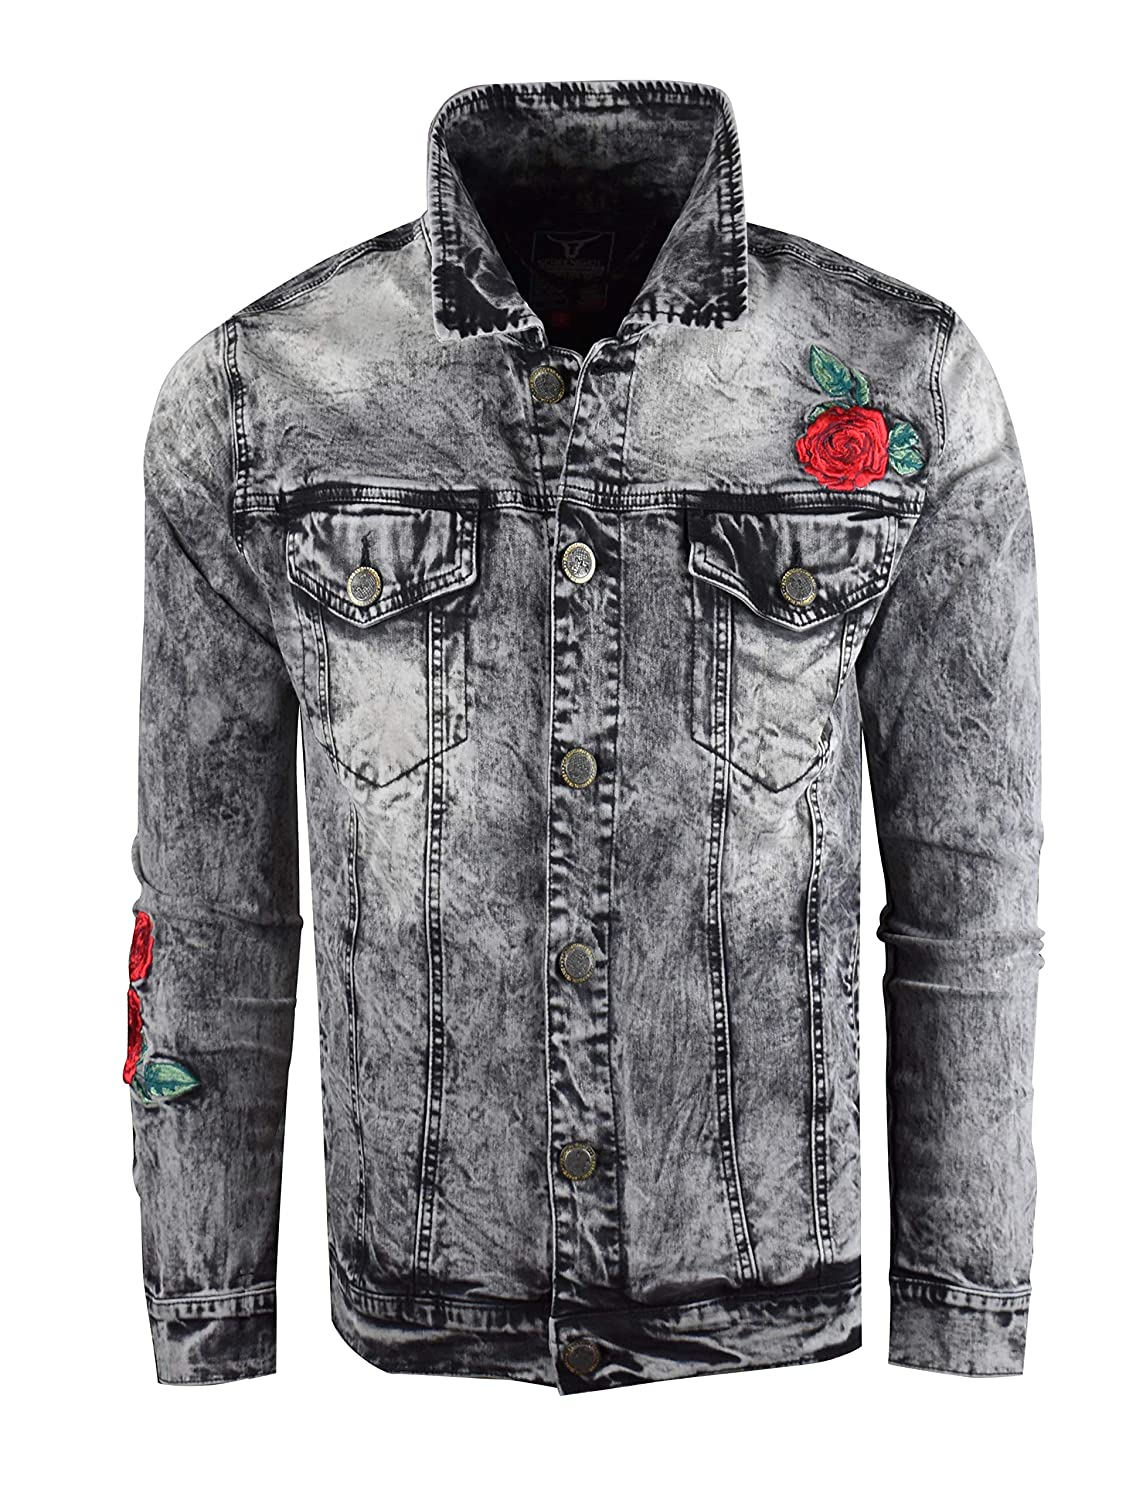 Screenshotbrand Men's Premium Distressed Denim Jacket - Skinny Fit with Side Pockets